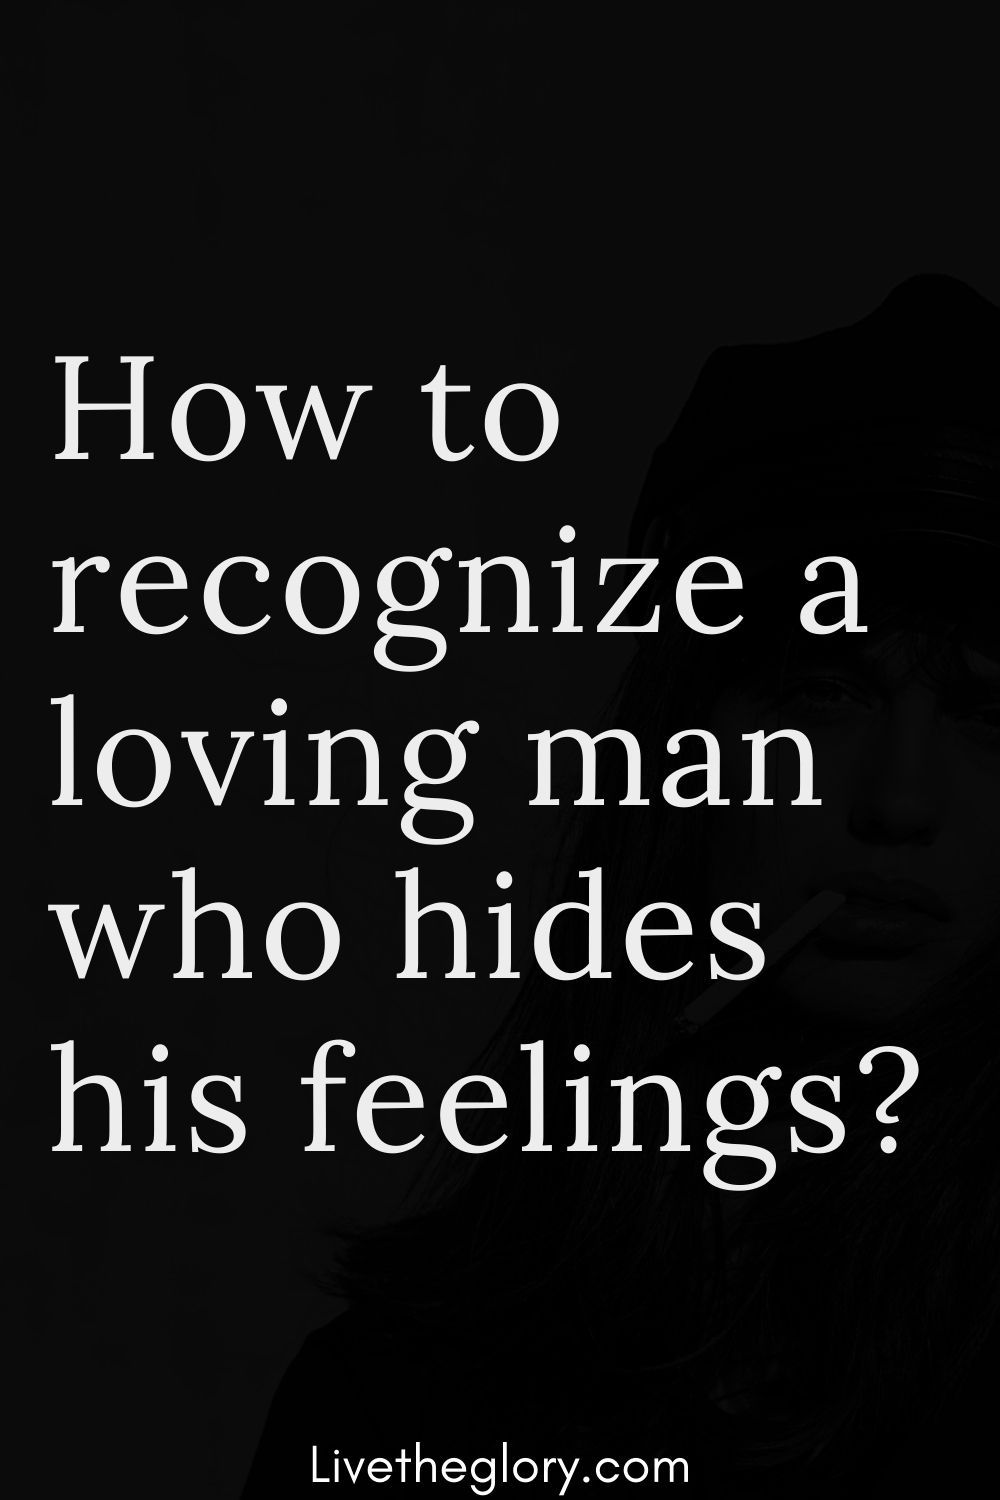 When a man tries to hide his feelings